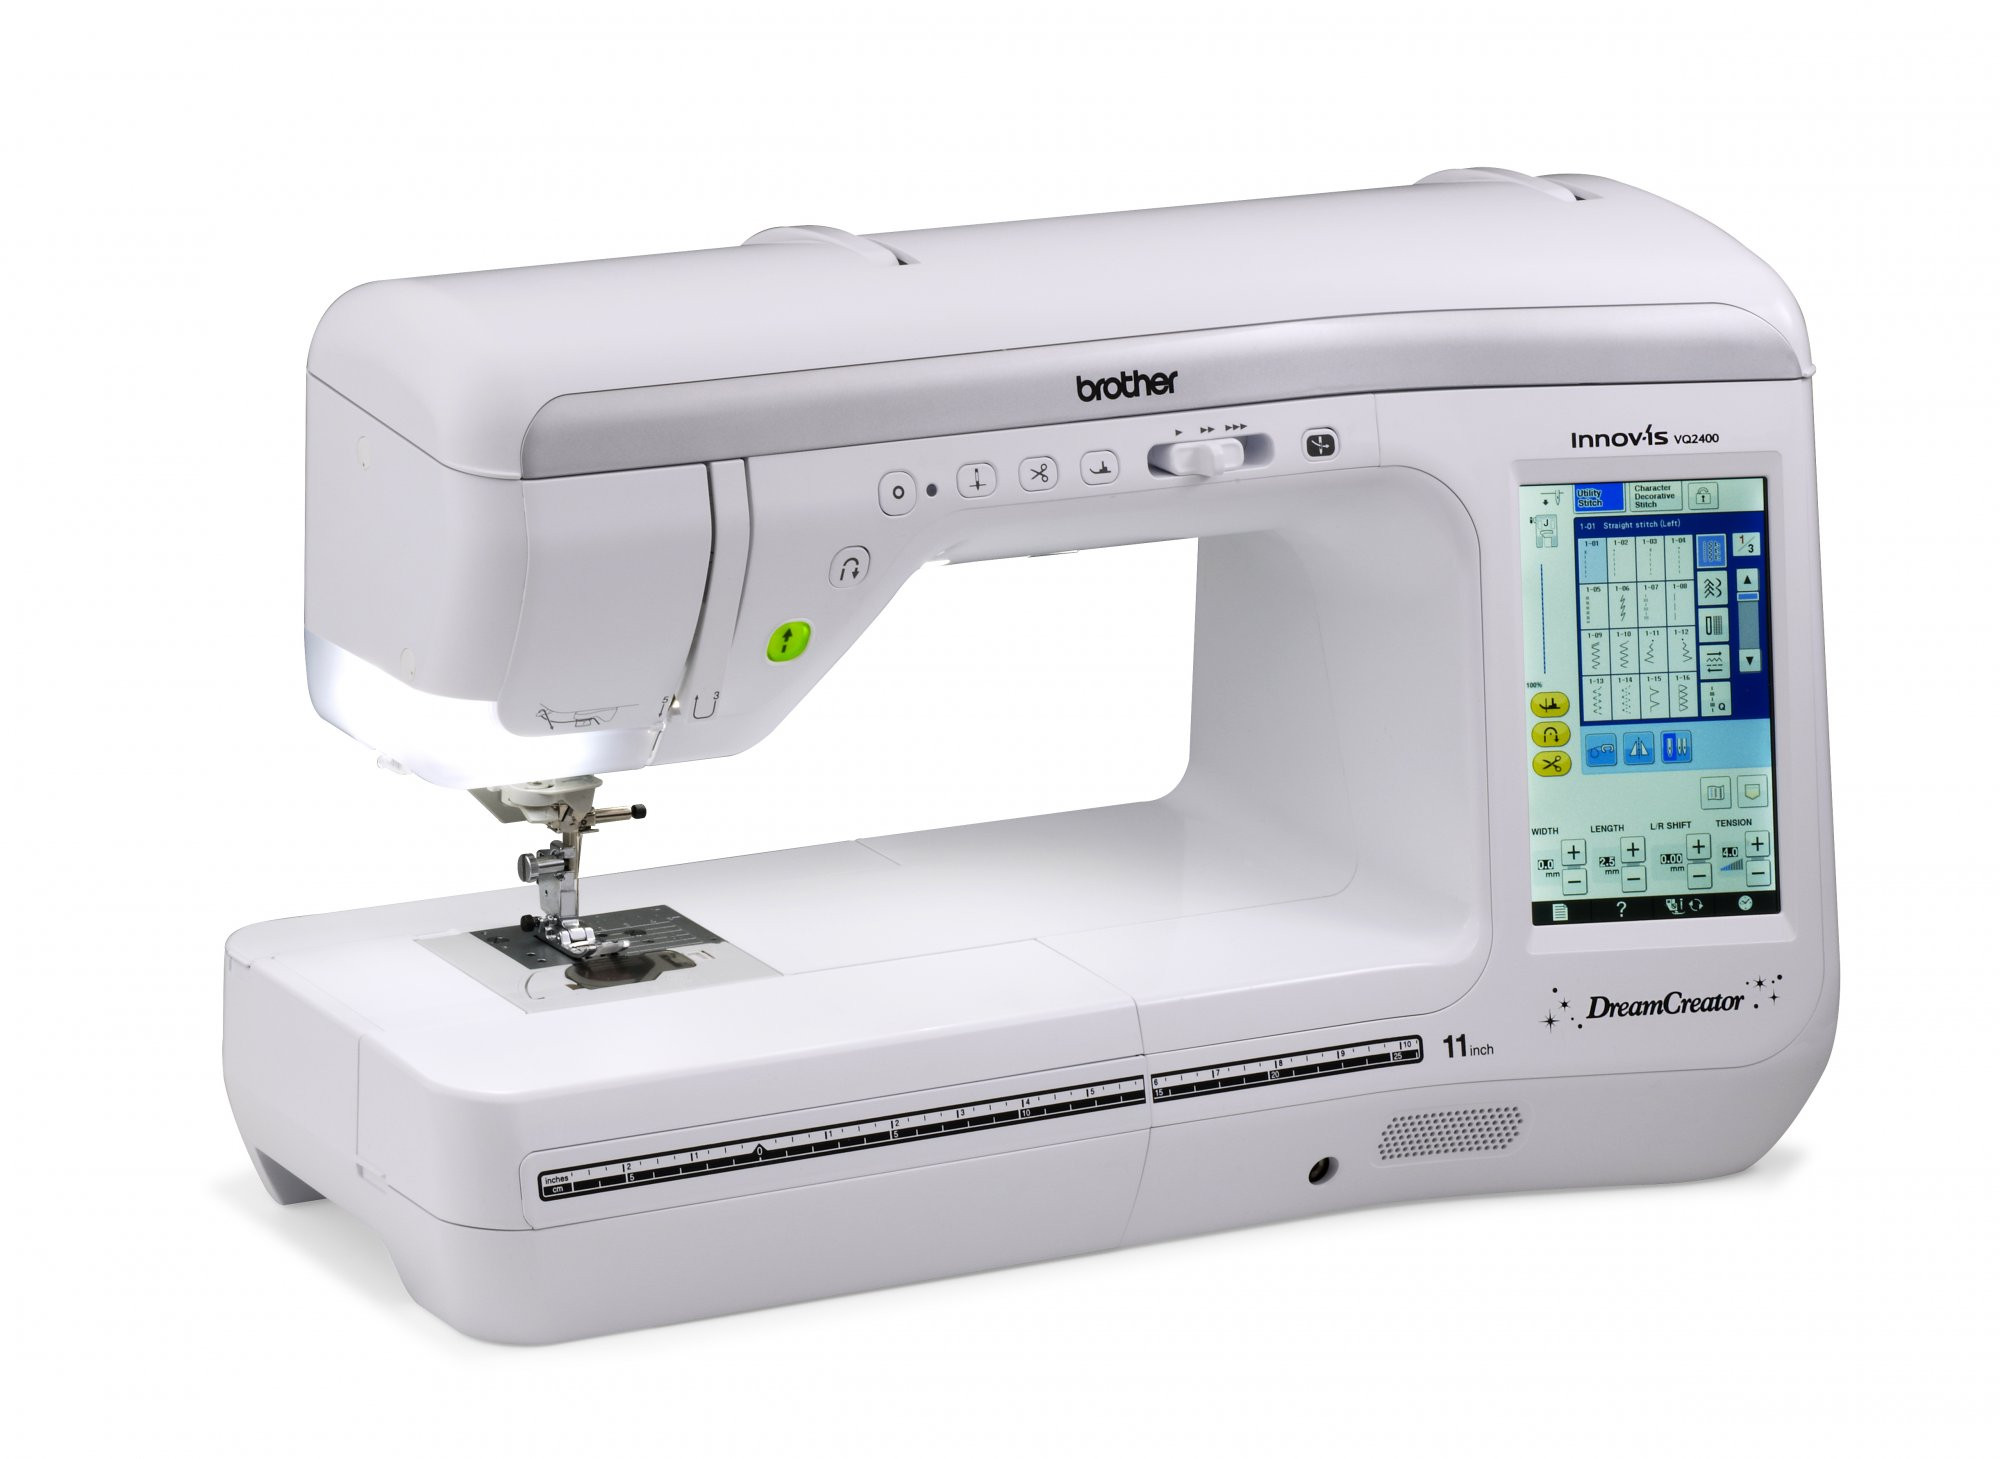 Lovely Sewing Machine Brother Dreamcreator Vq2400 Sewing Only Embroidery Only Machines Of Perfect 49 Pics Embroidery Only Machines